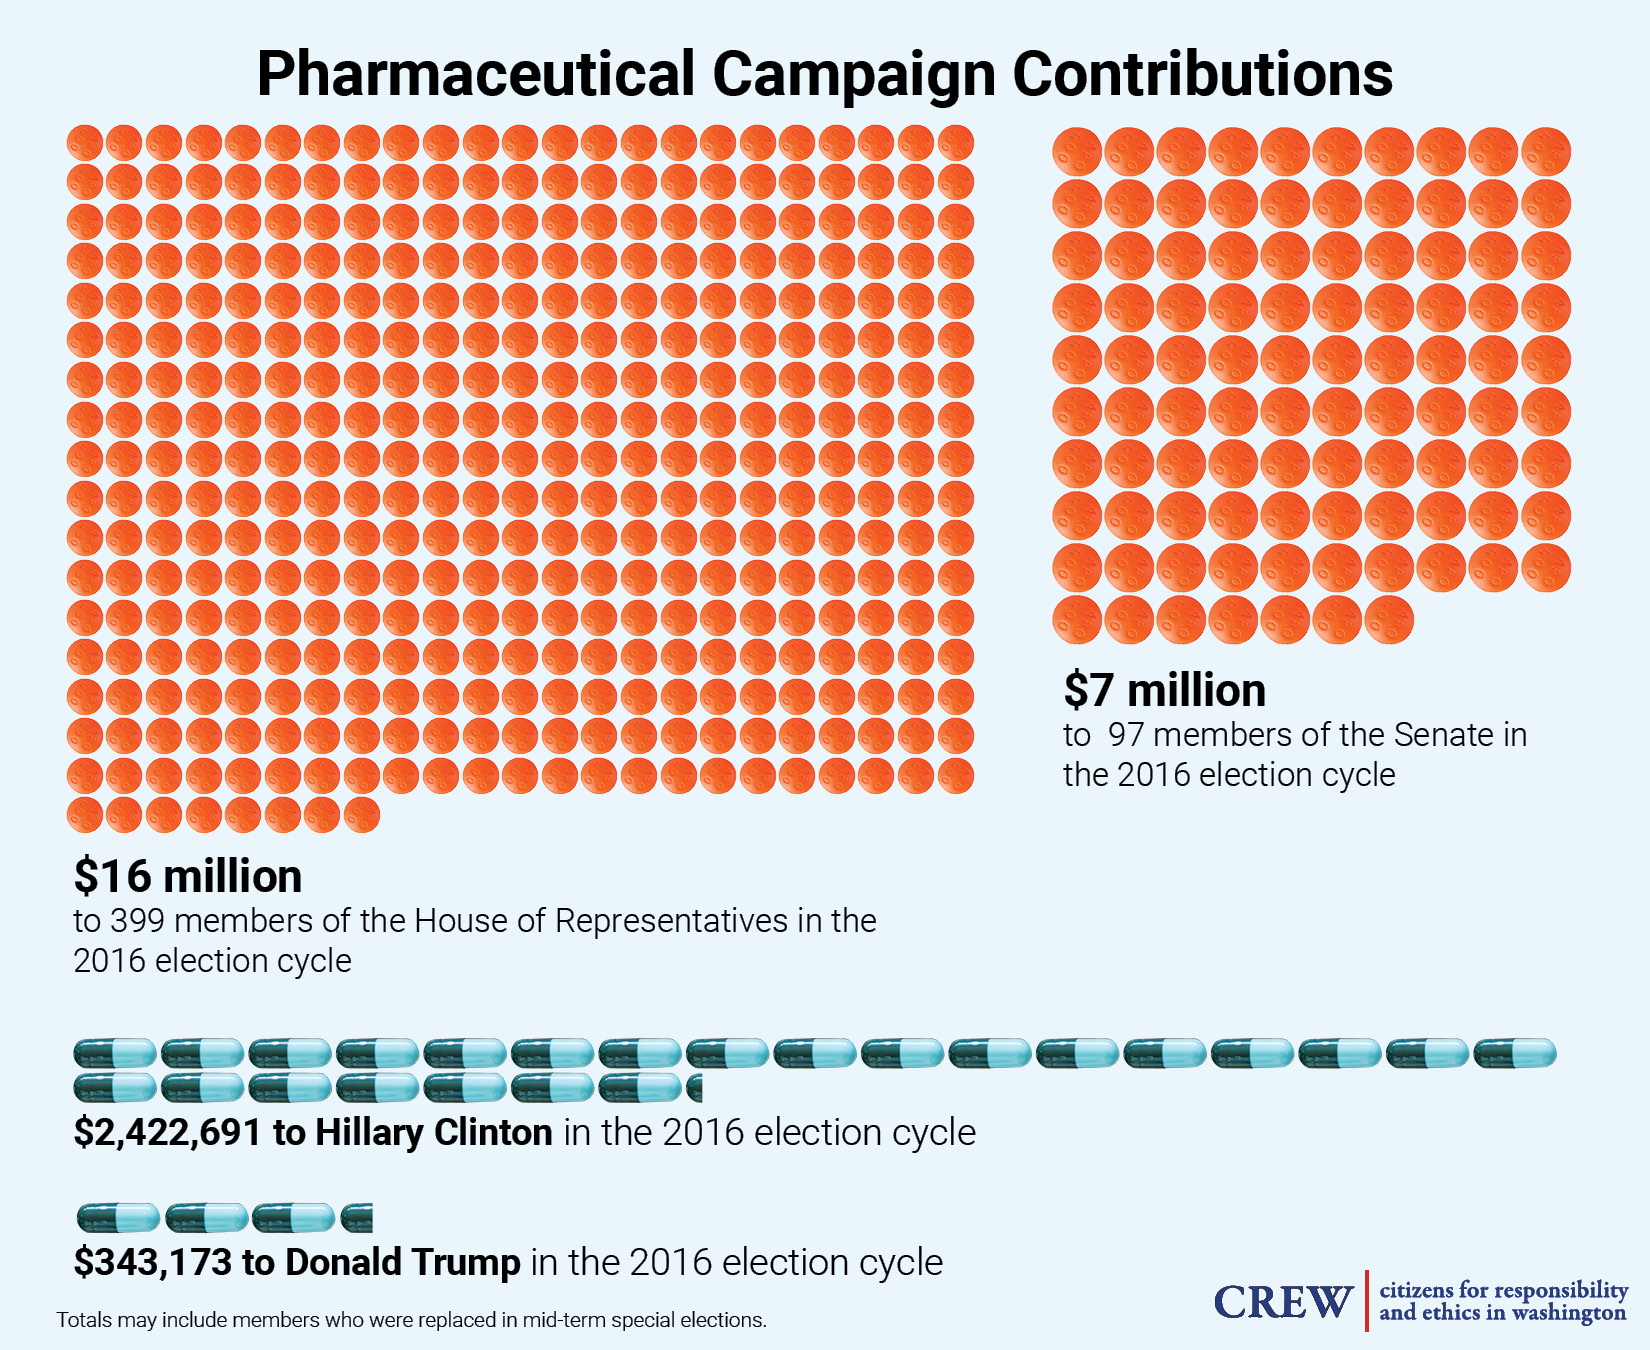 pharmaceutical campaign contributions